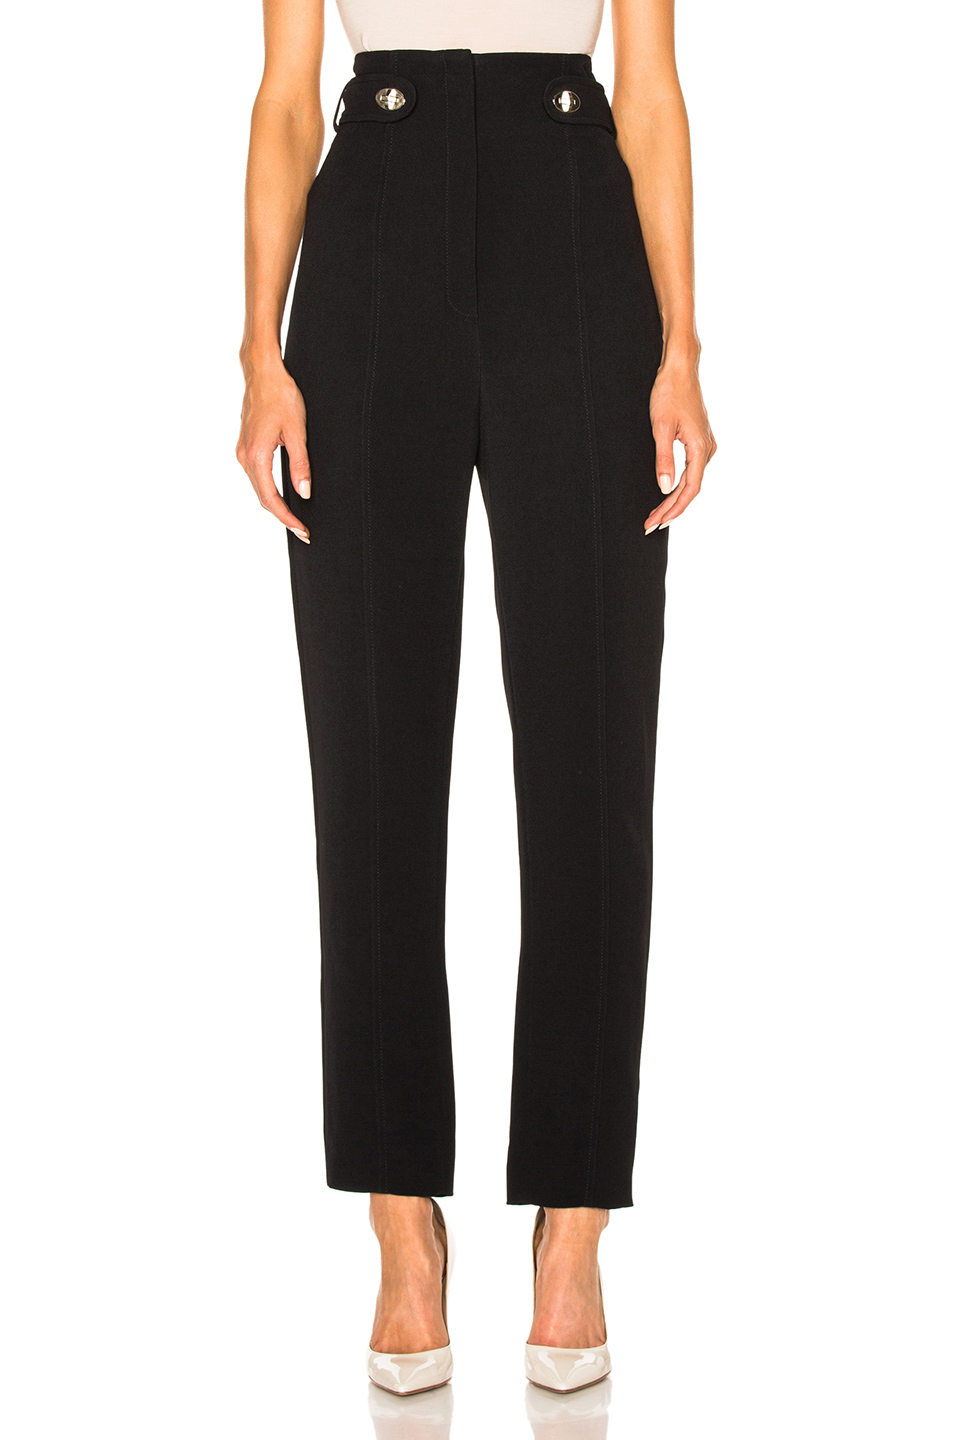 Proenza Schouler Fluid Viscose Cady Pencil Leg Pants in Black